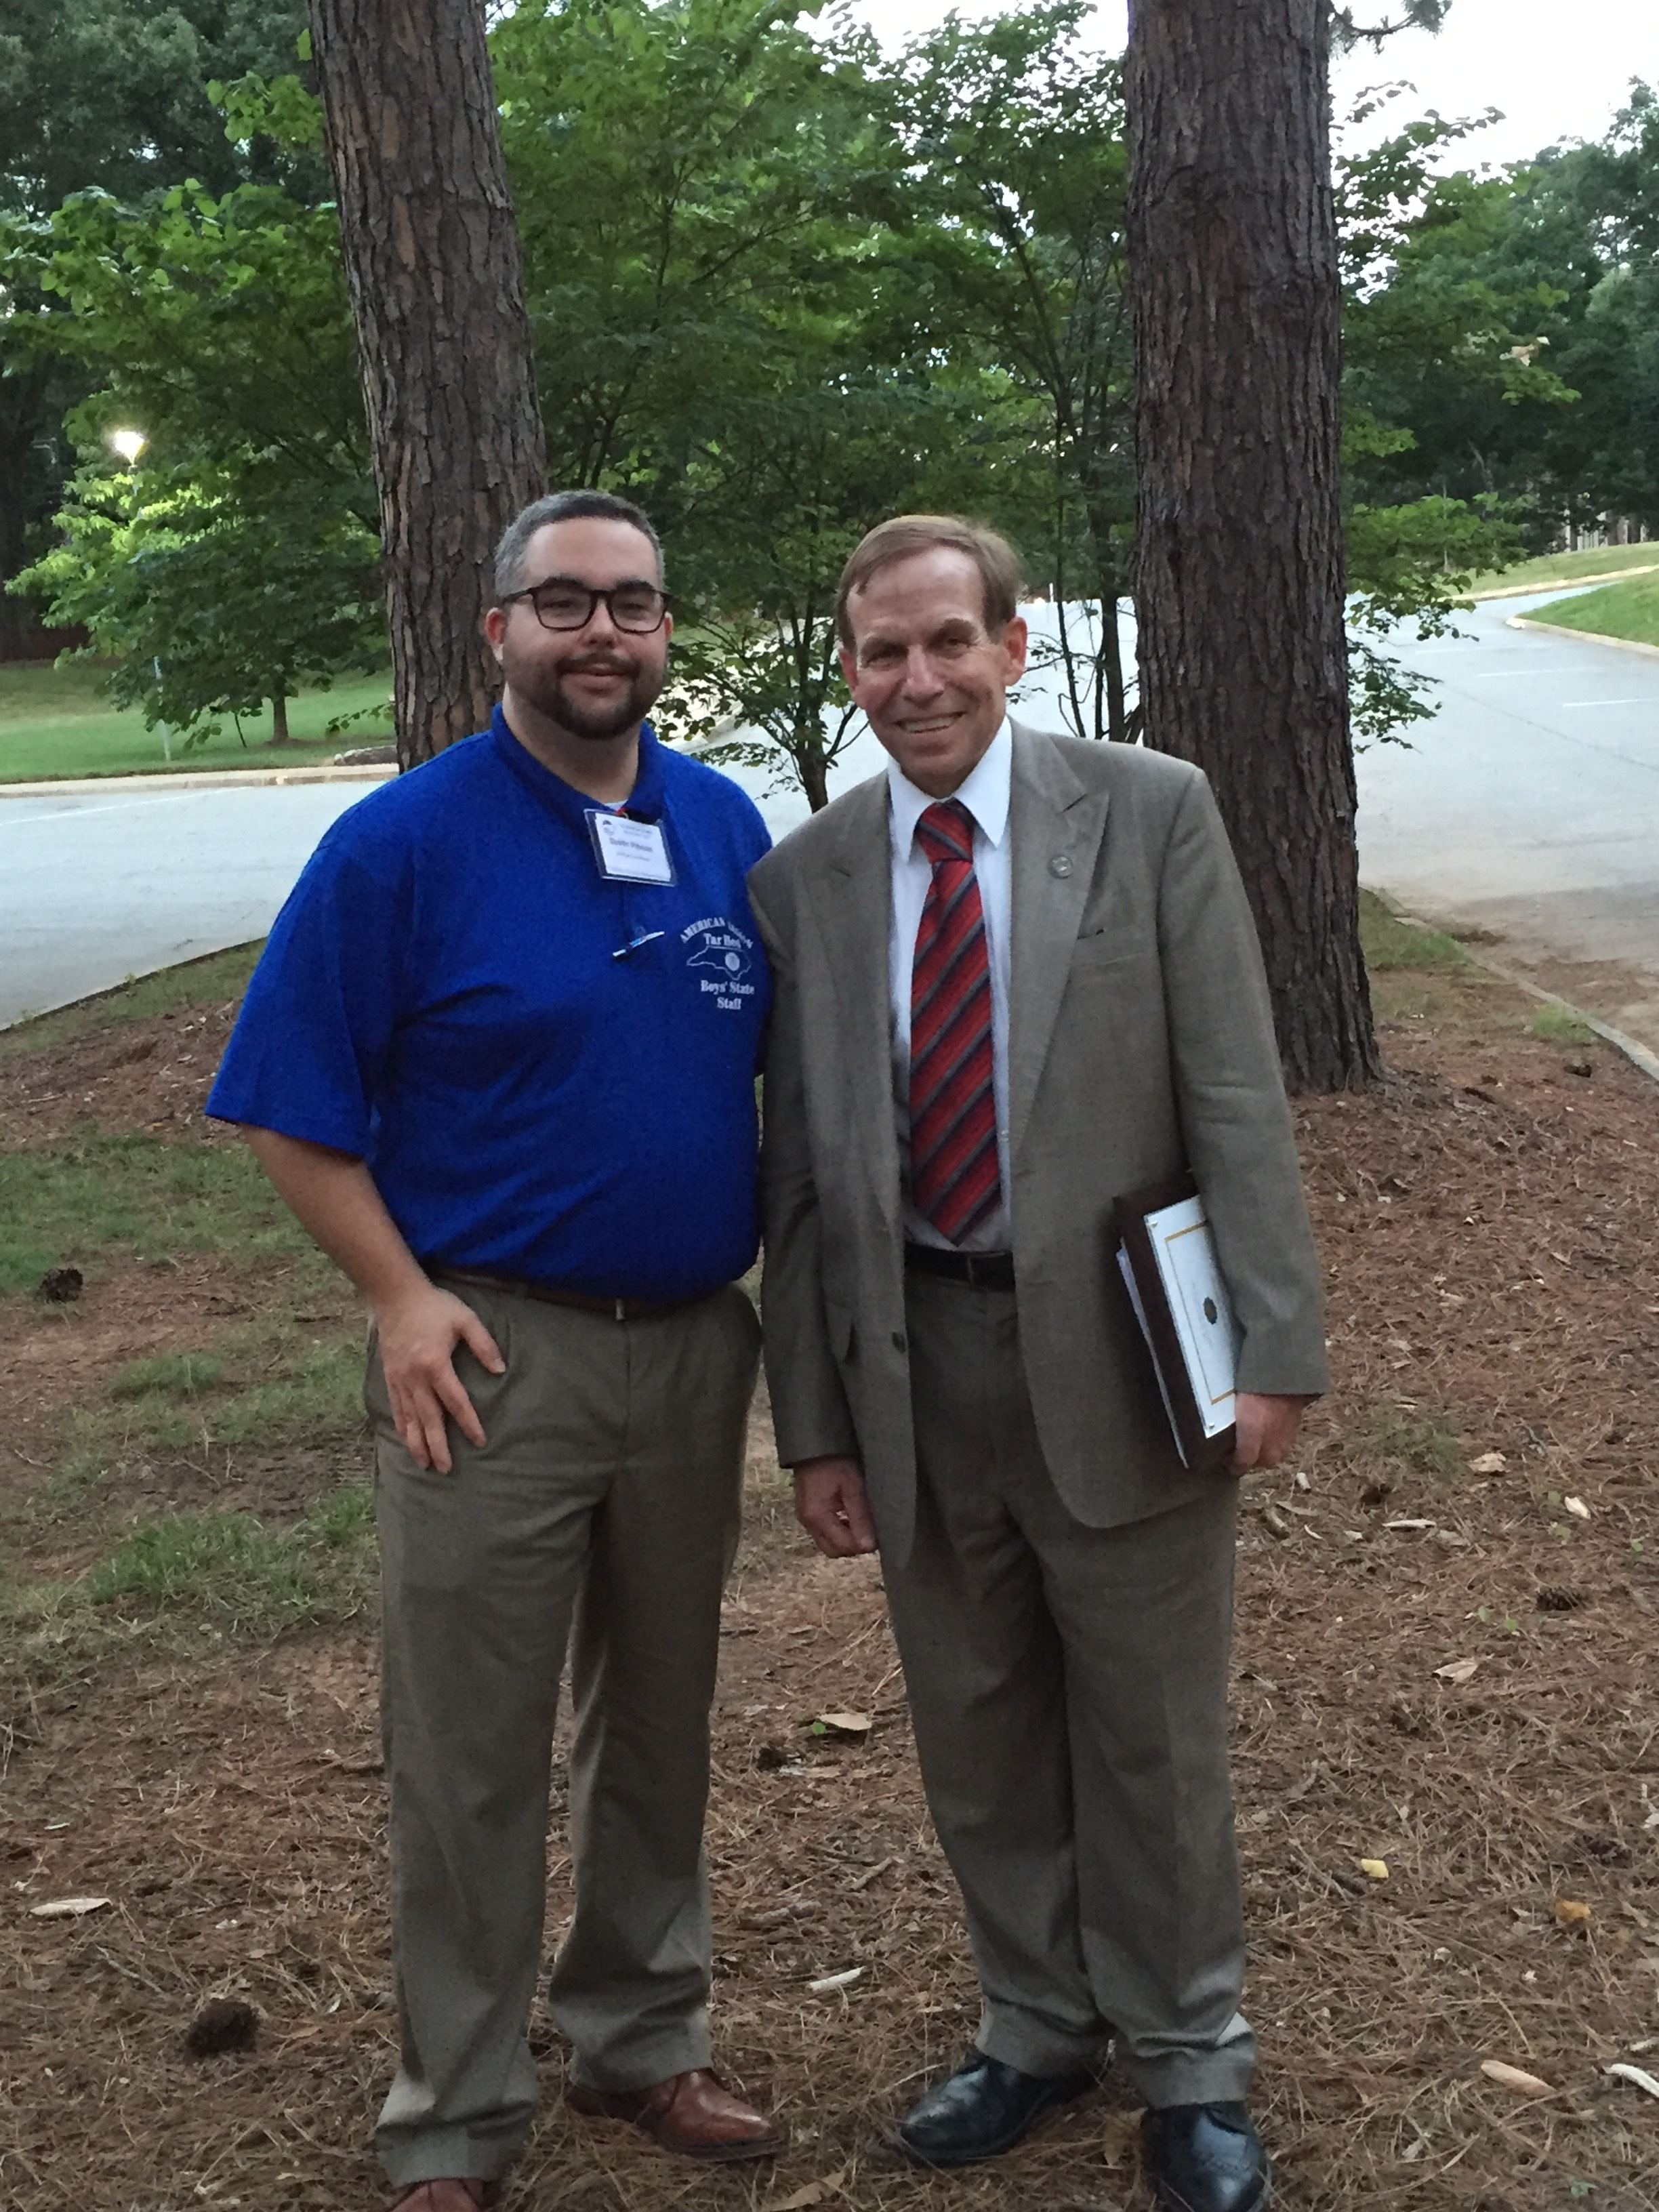 With former student and current Boys State volunteer Dustin Pittman on campus of Catawba College in Salisbury, 22 June 2016.